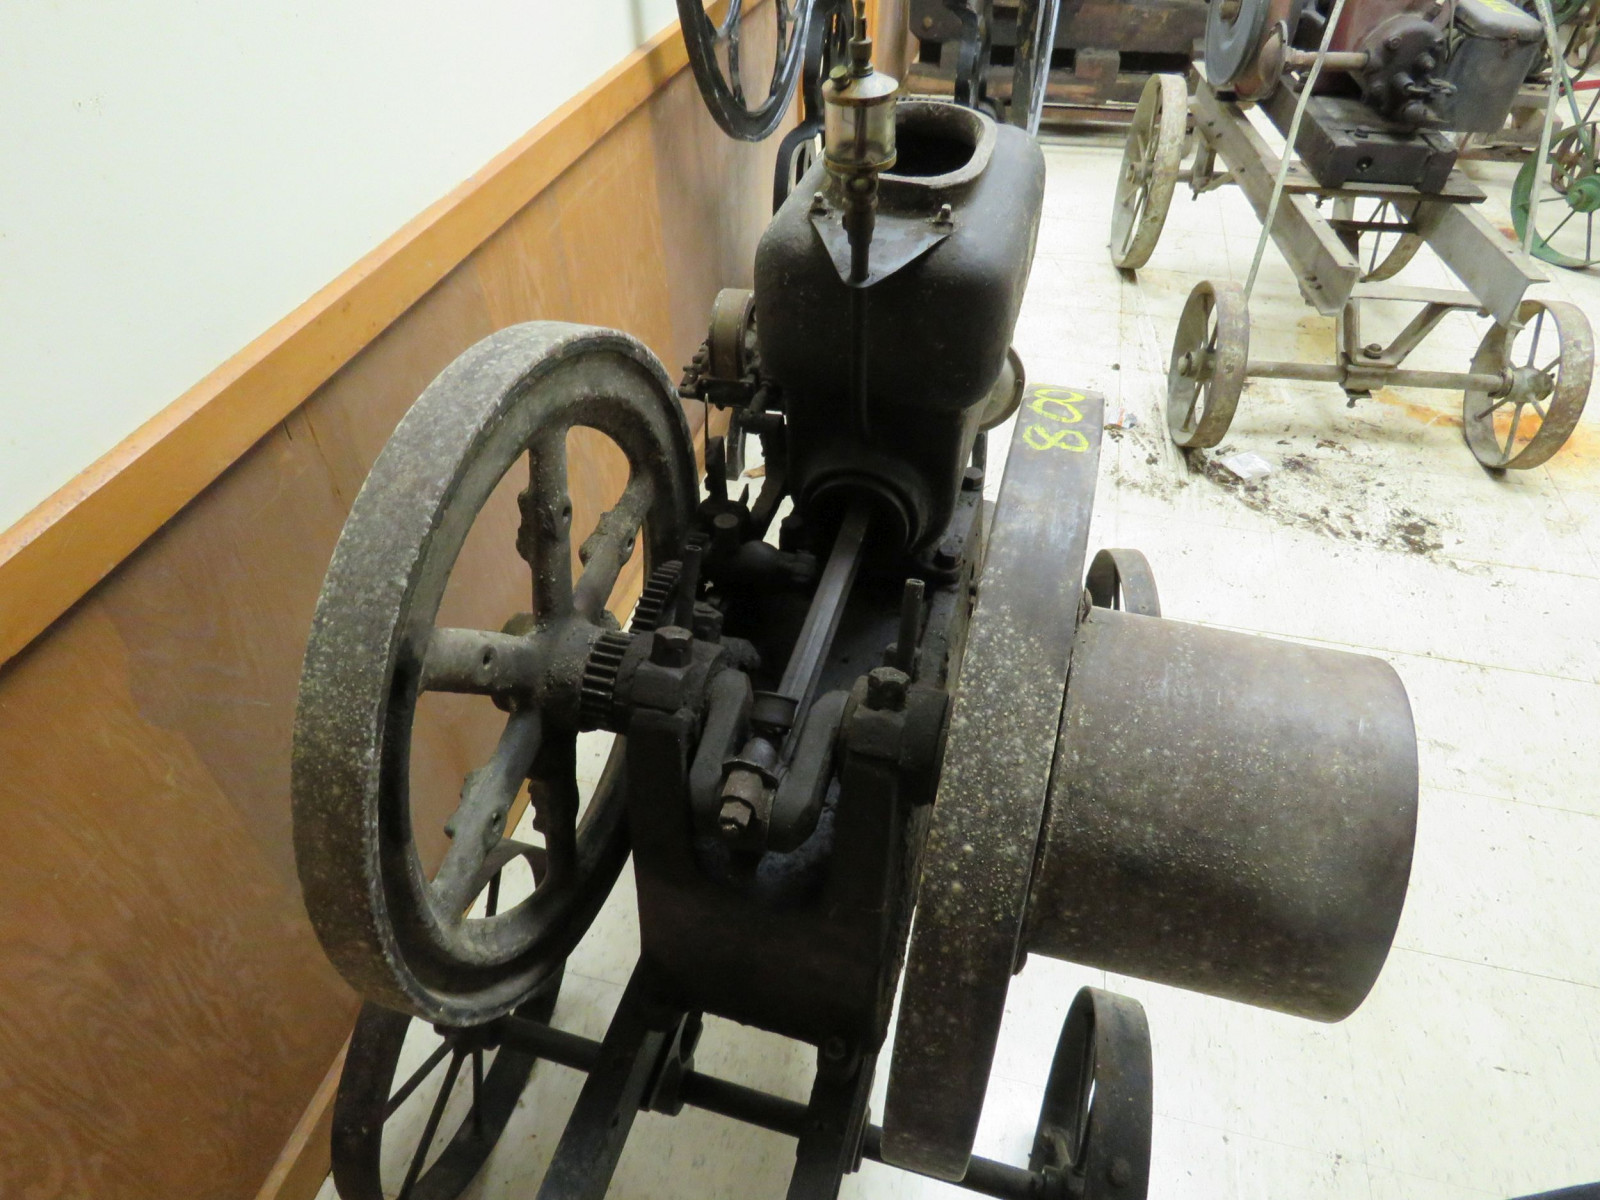 Original 3hp Stationary Gas Engine on Cart - Image 4